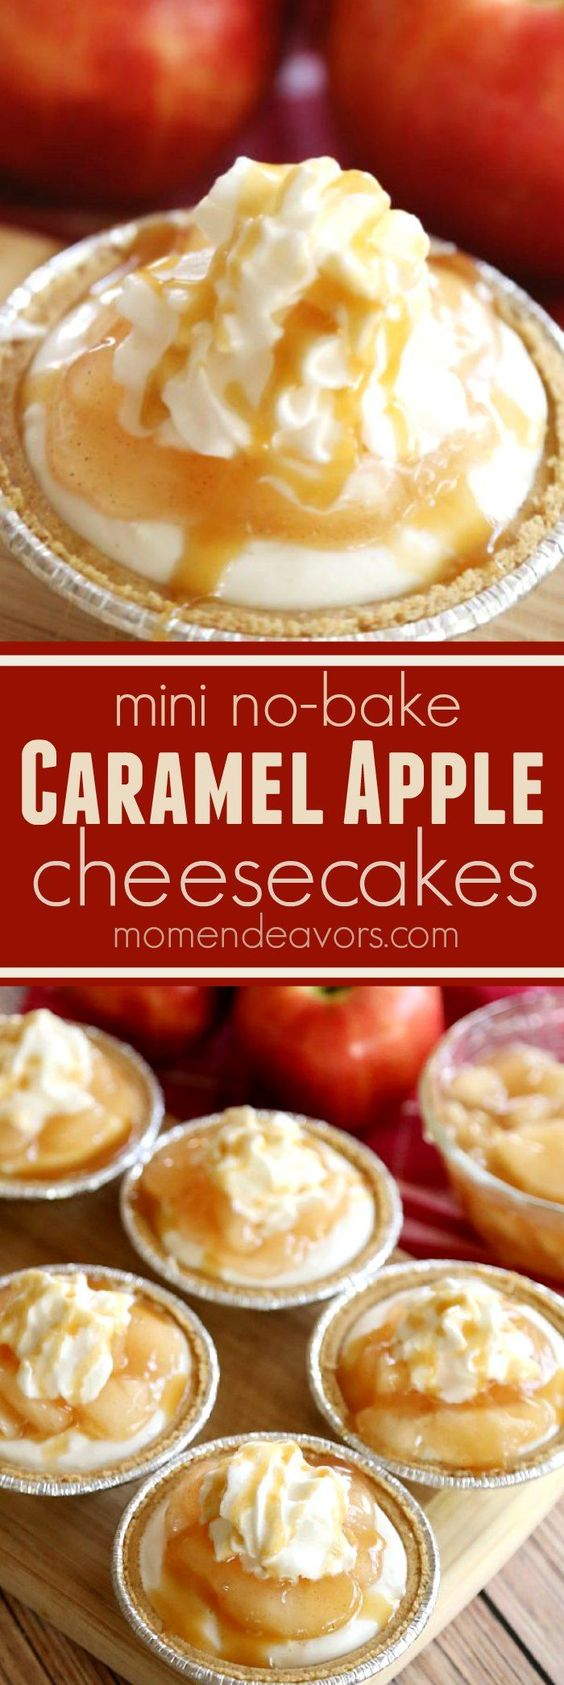 No-bake mini caramel apple cheesecakes! SO easy to make and SO good!